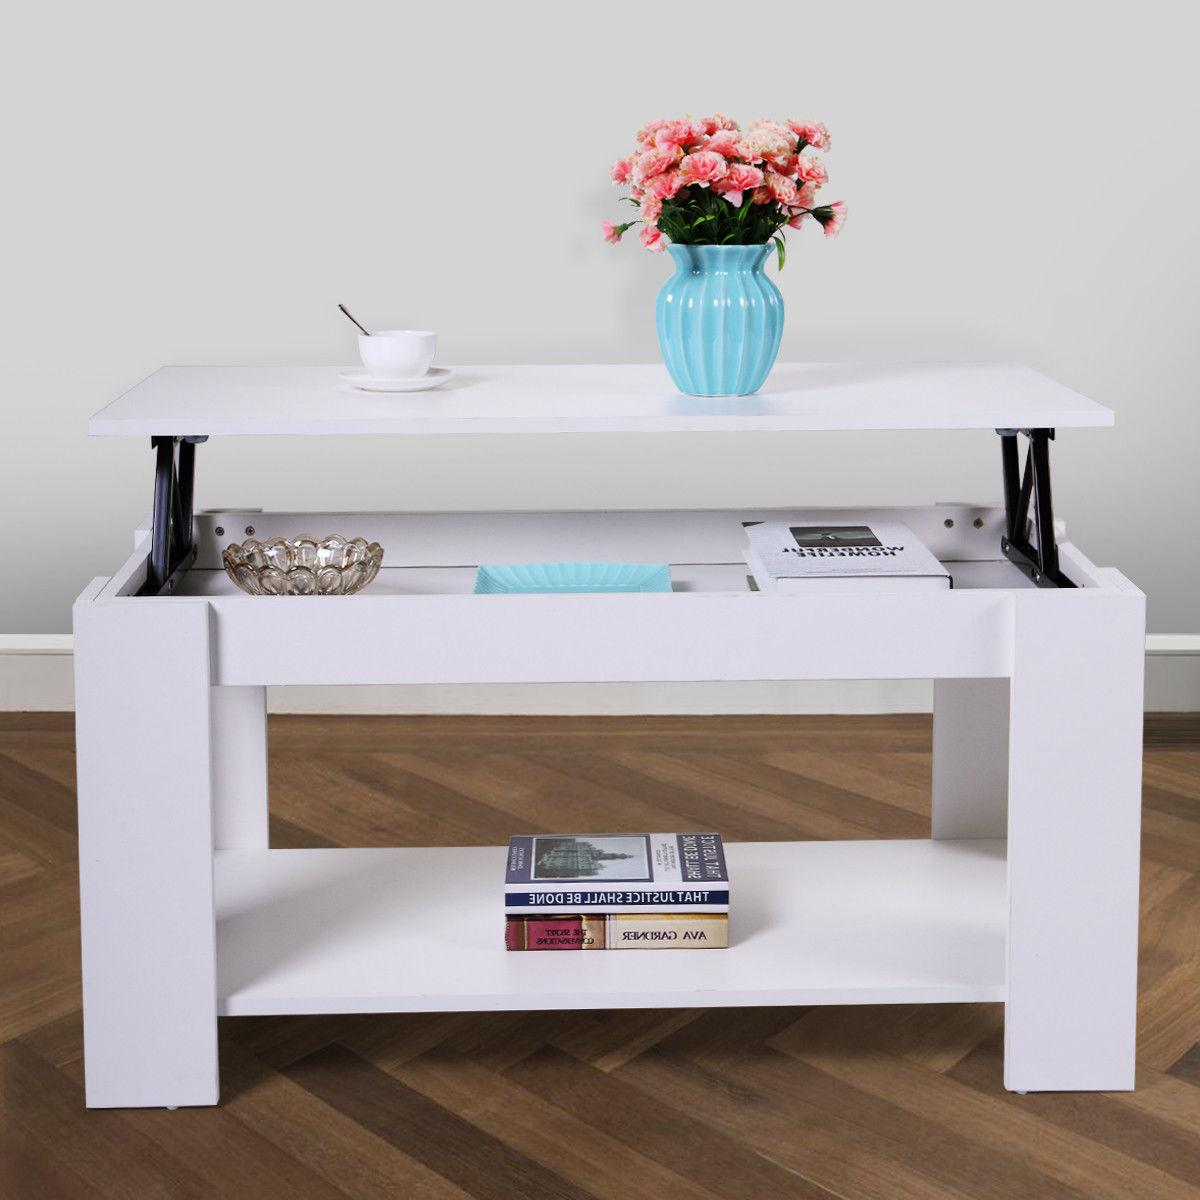 Wood Modern Lift Top Coffee Table with Storage Space Living